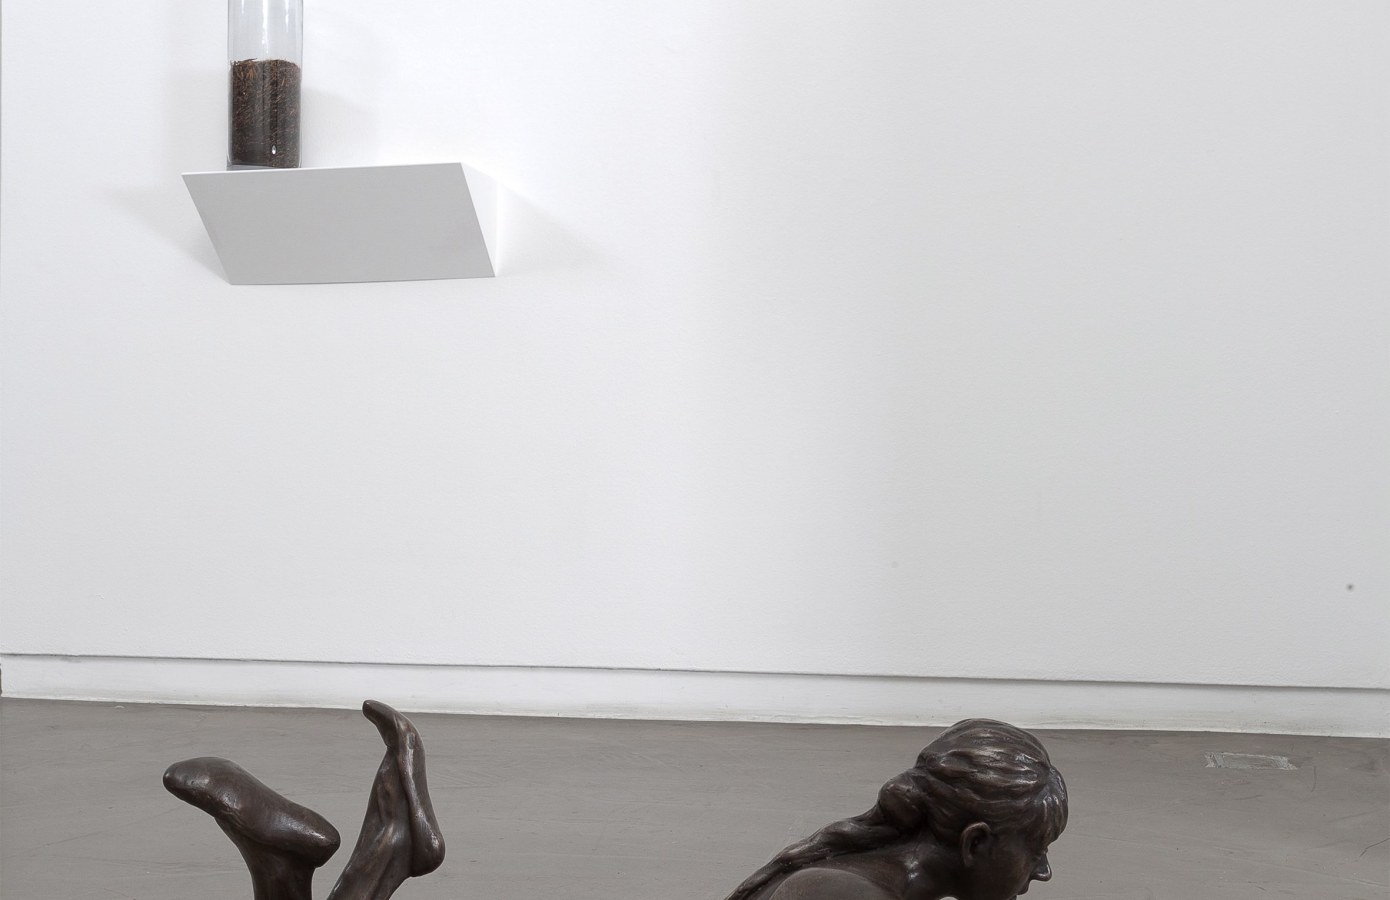 Now there's not enough of it to go around, Ryan Gander,